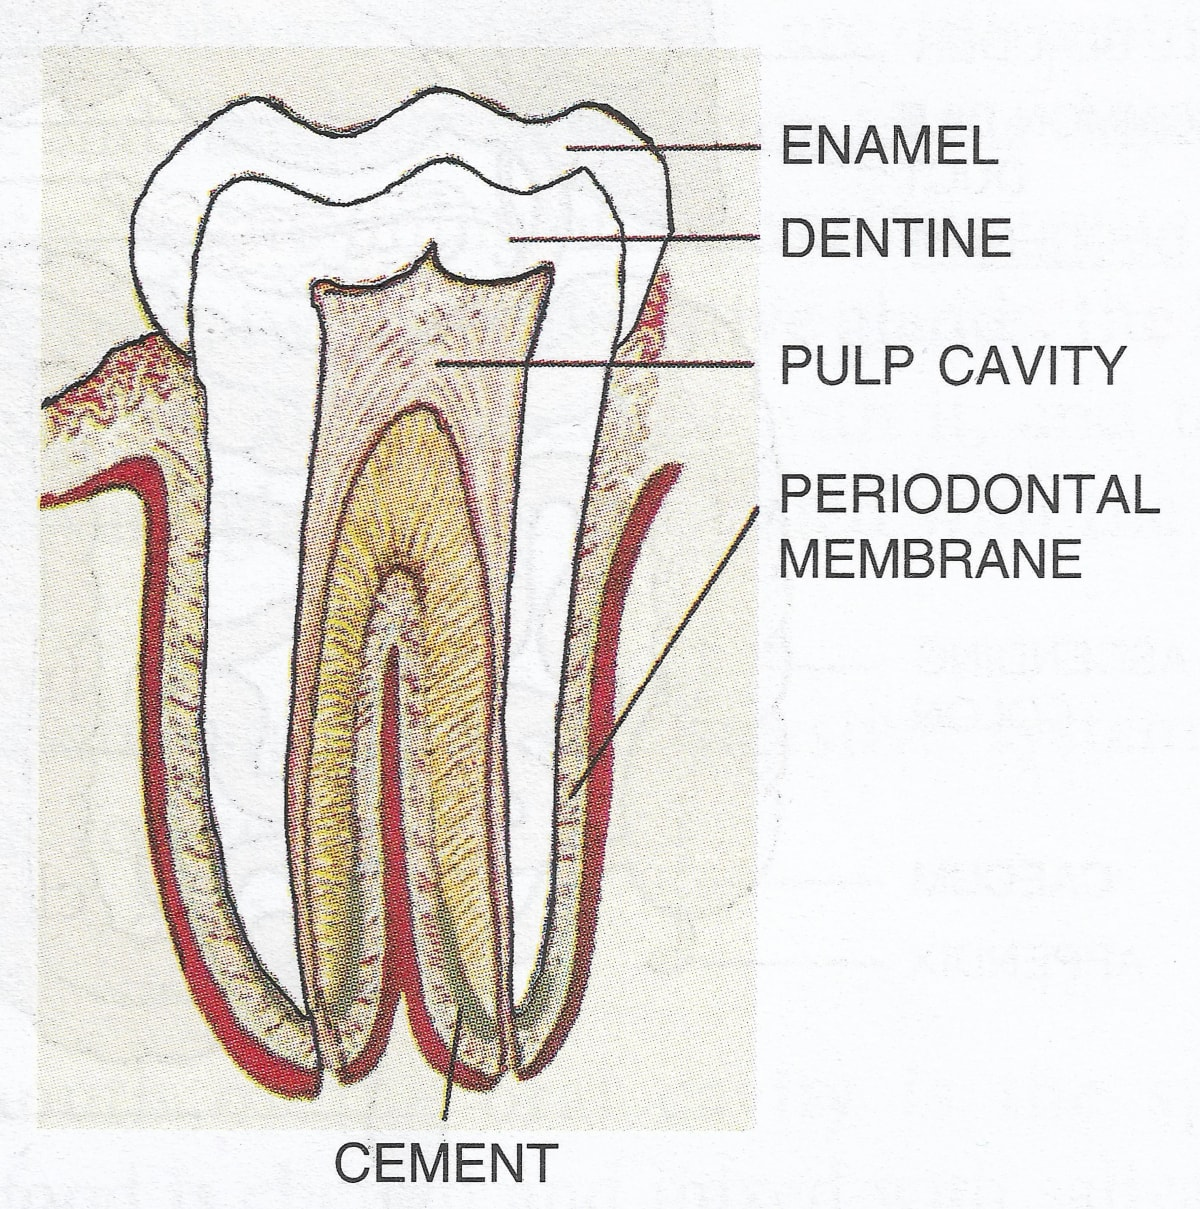 Draw a labelled diagram to show the internal structure of a mammalian tooth with two roots. Digestive System, Concise Biology ICSE Class 9.